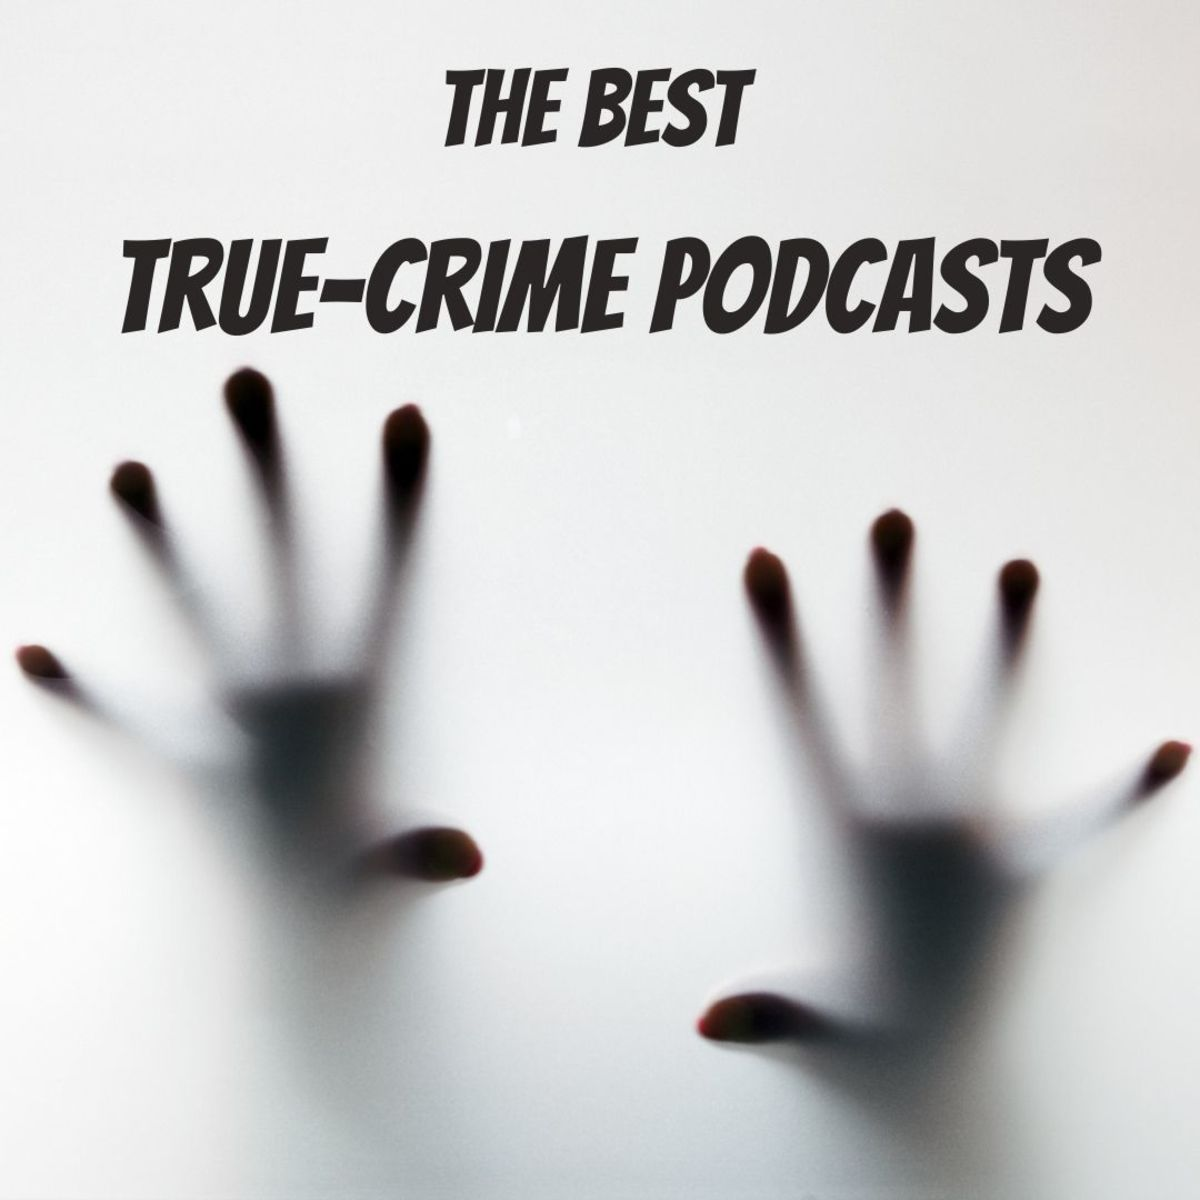 The top 6 true-crime podcasts you should listen to now